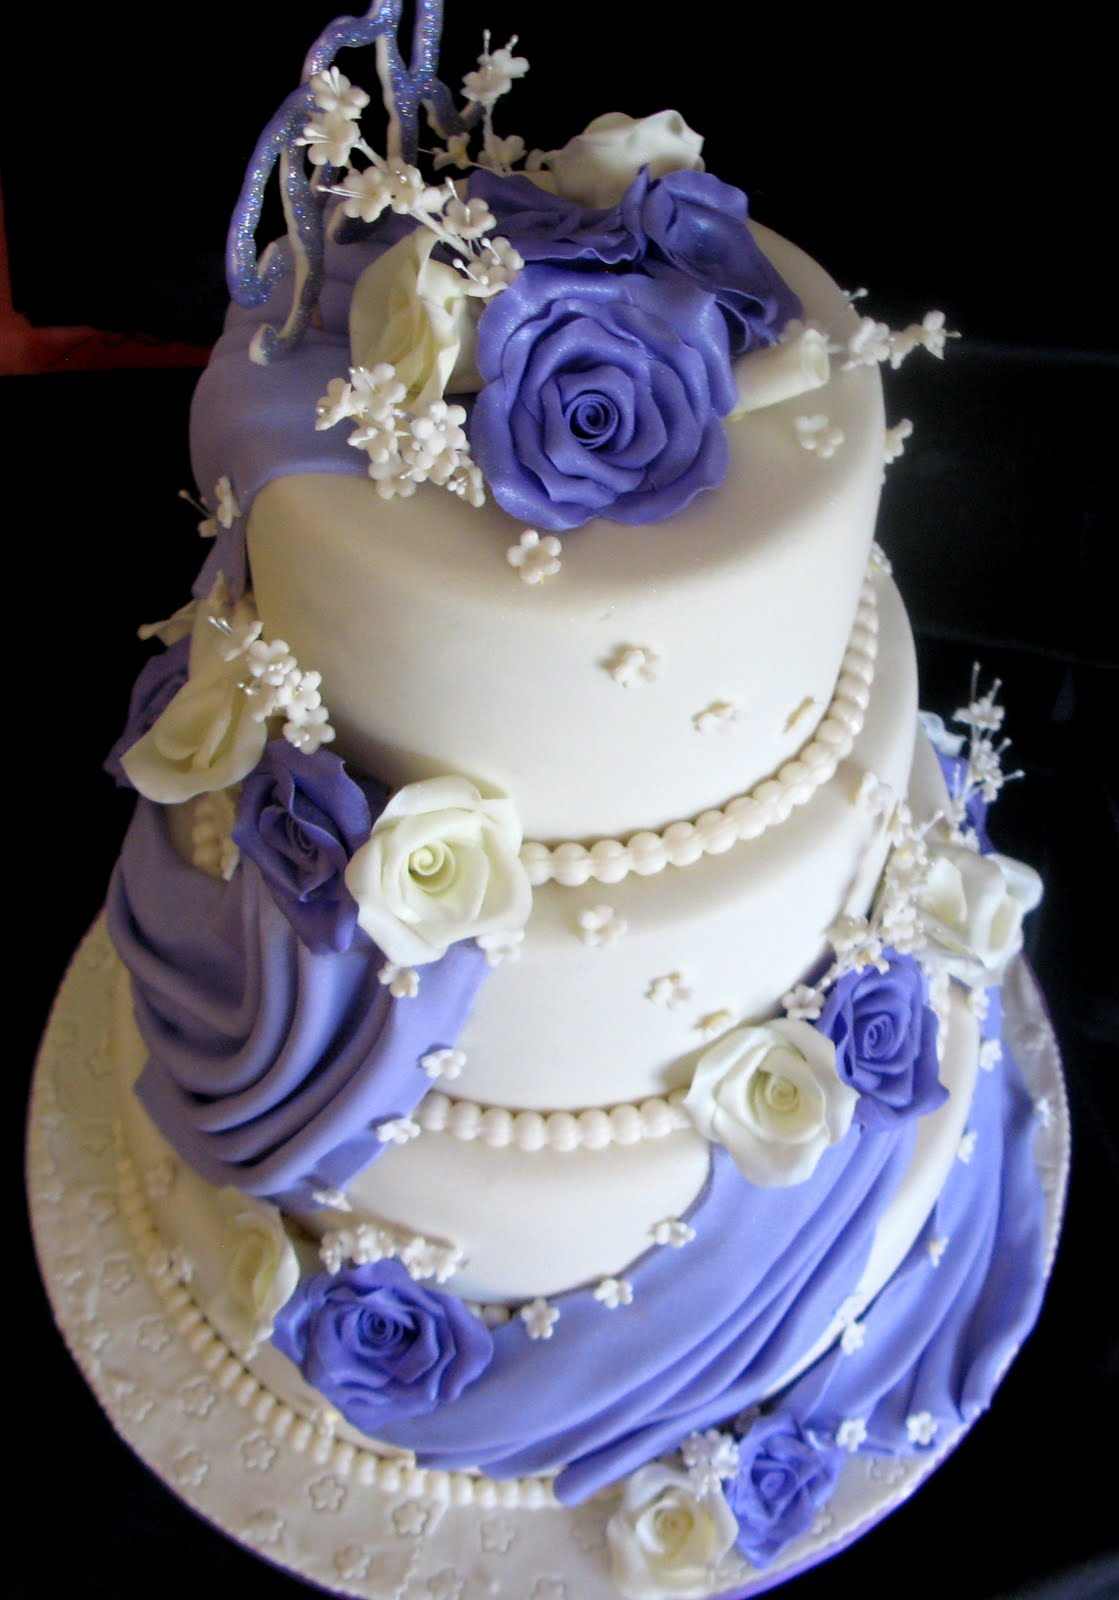 Three - Tier Wedding Cake - Roses & Drapes